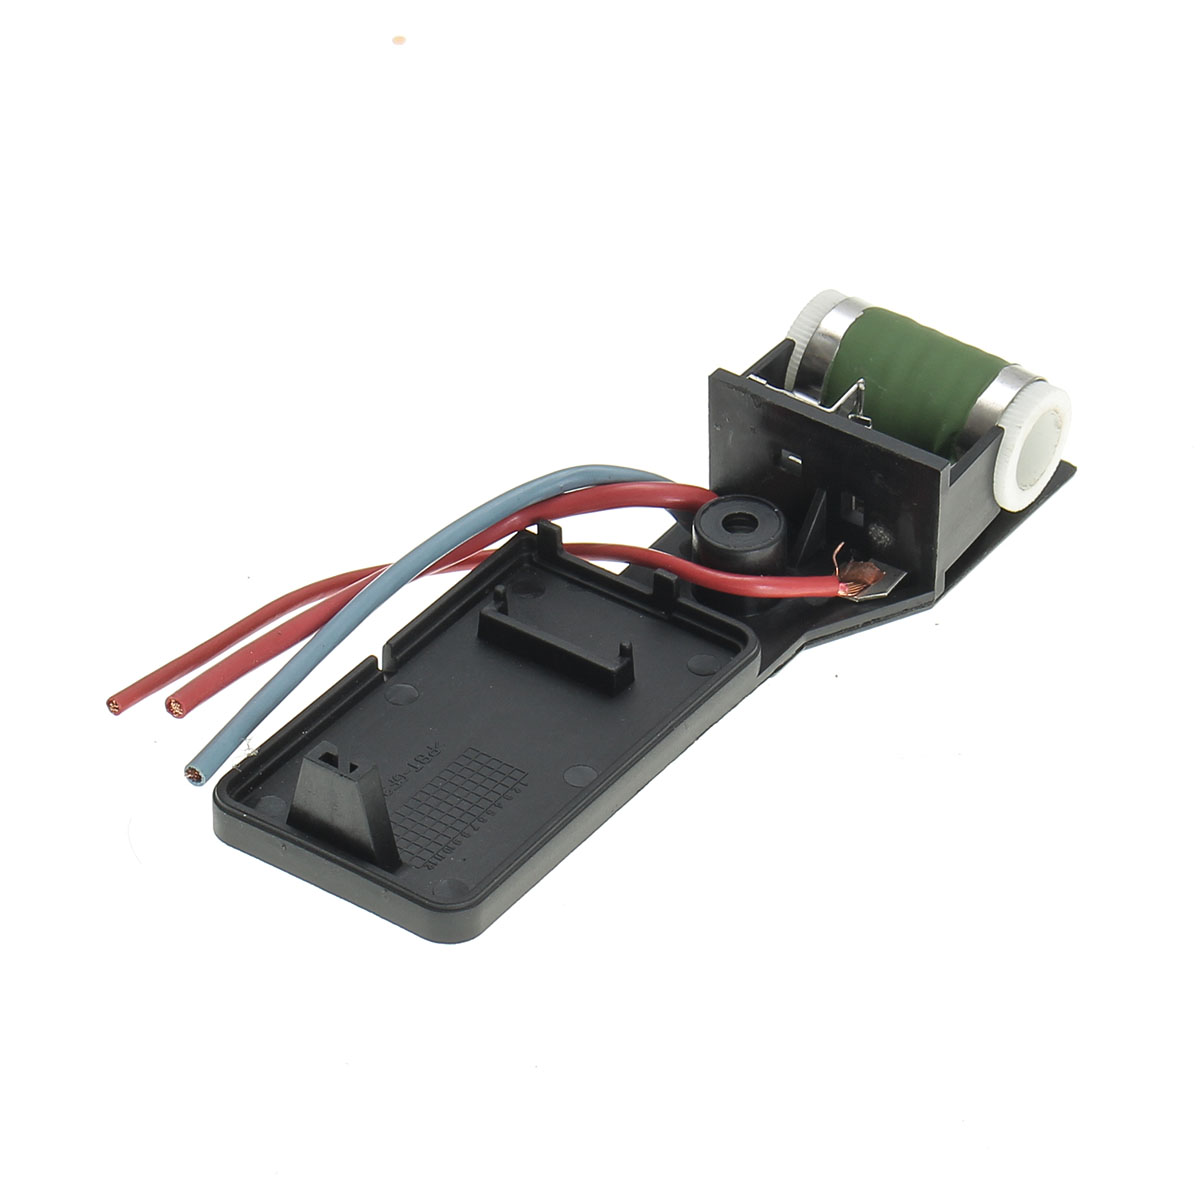 New <font><b>Motor</b></font> <font><b>Fan</b></font> Resistor Engine Radiator <font><b>Cooling</b></font> Relay kit For <font><b>BMW</b></font> /Mini /Cooper 2003-2008 image